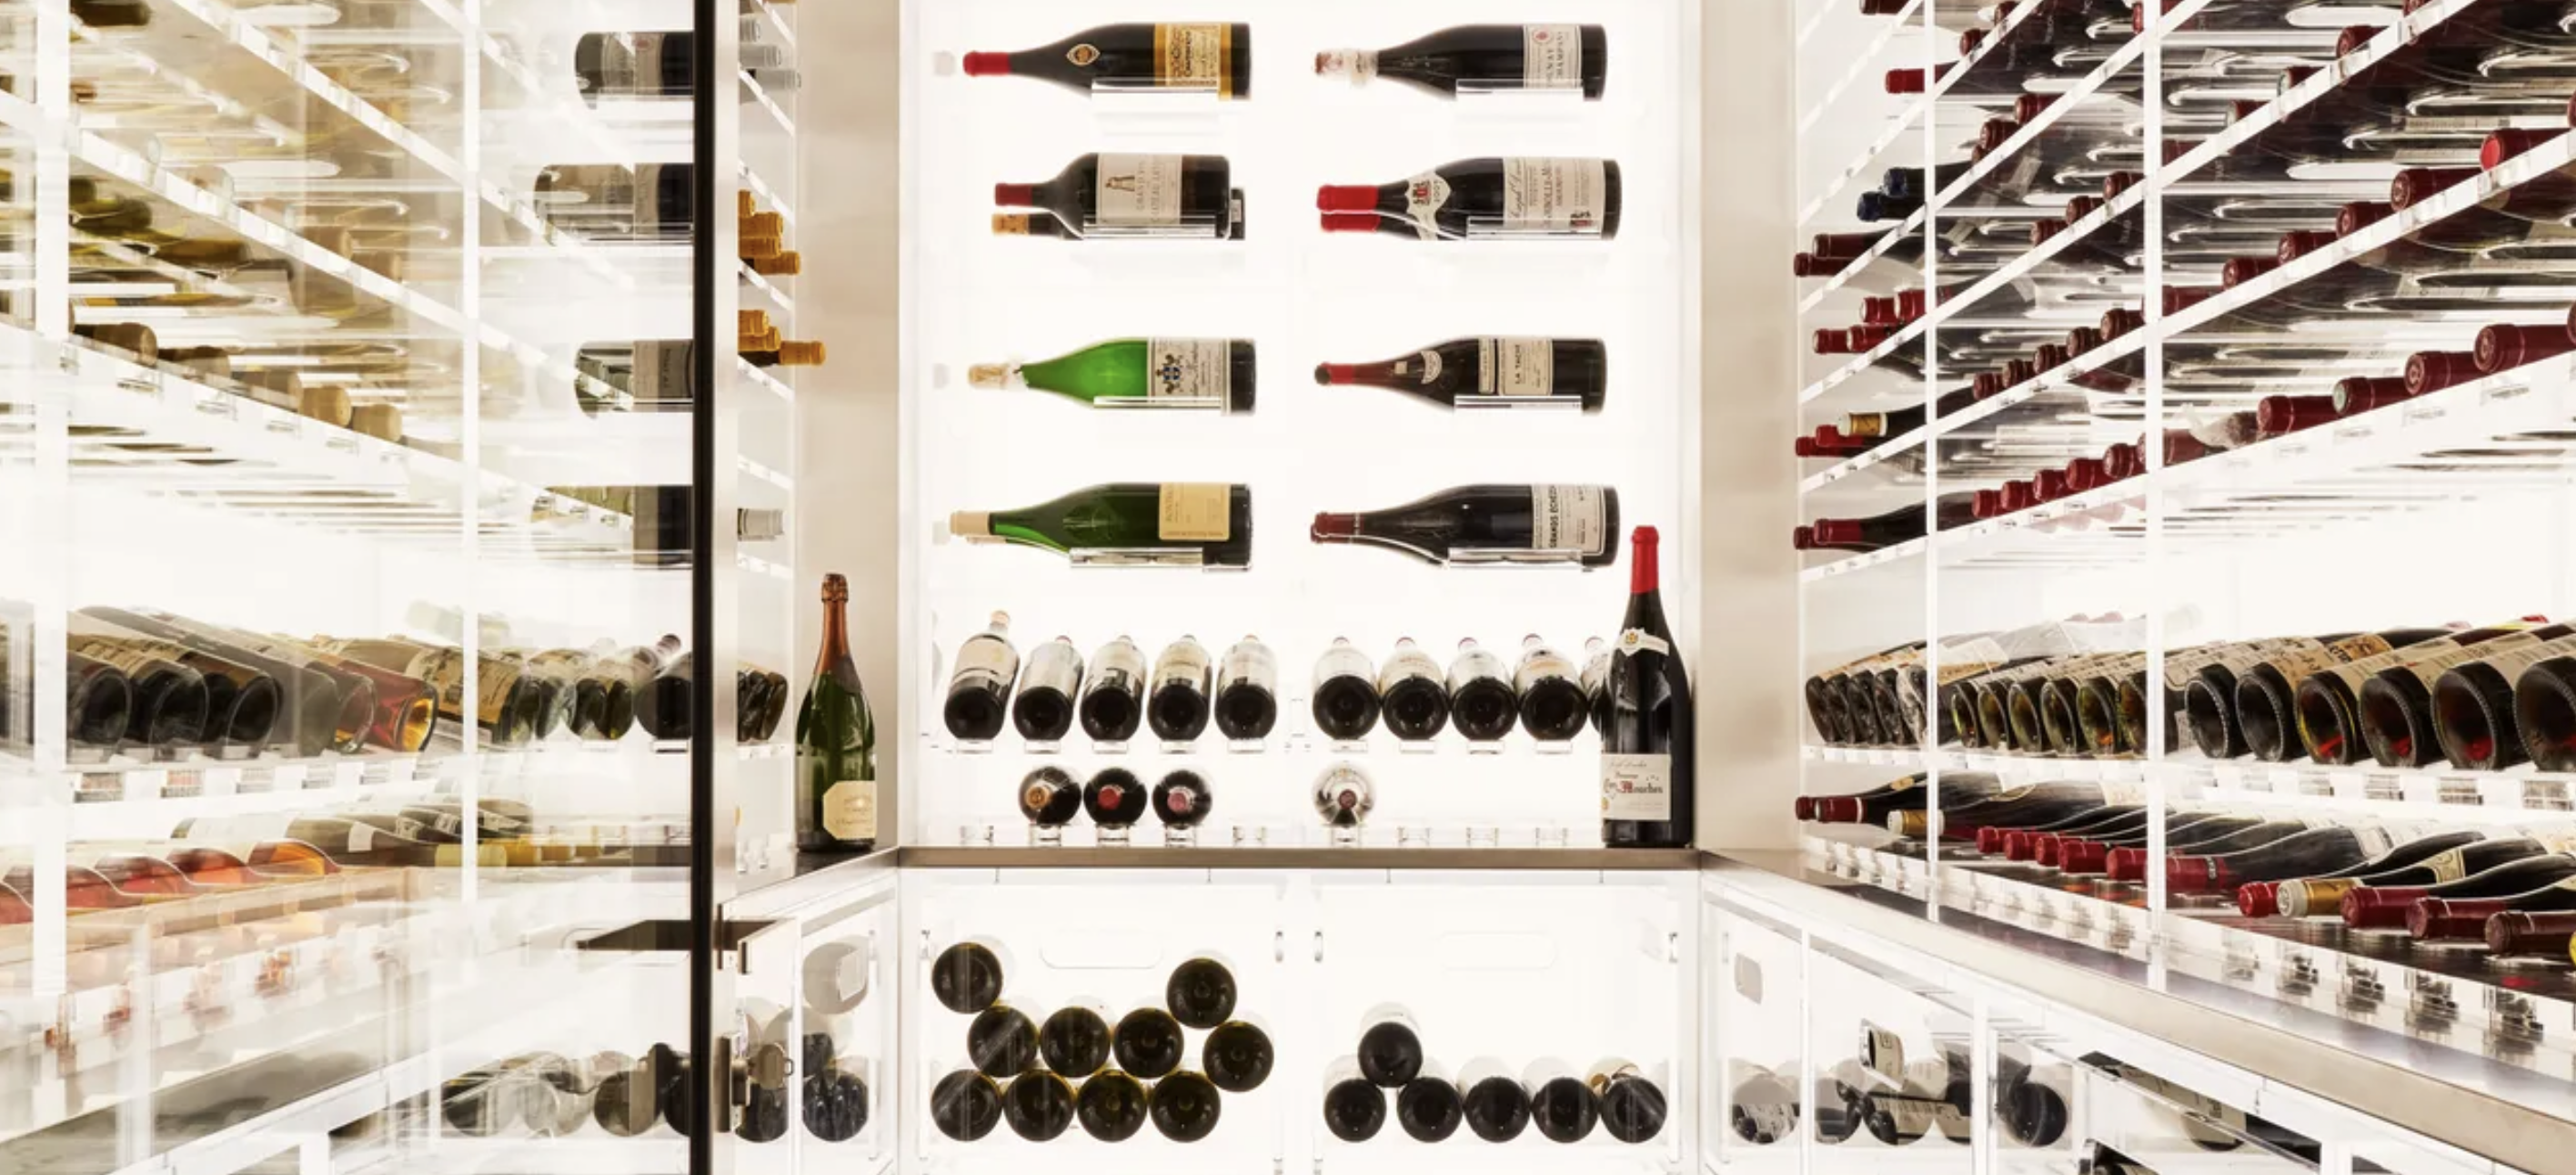 Stock Your Wine in Style With These Luxe Wine Cabinets